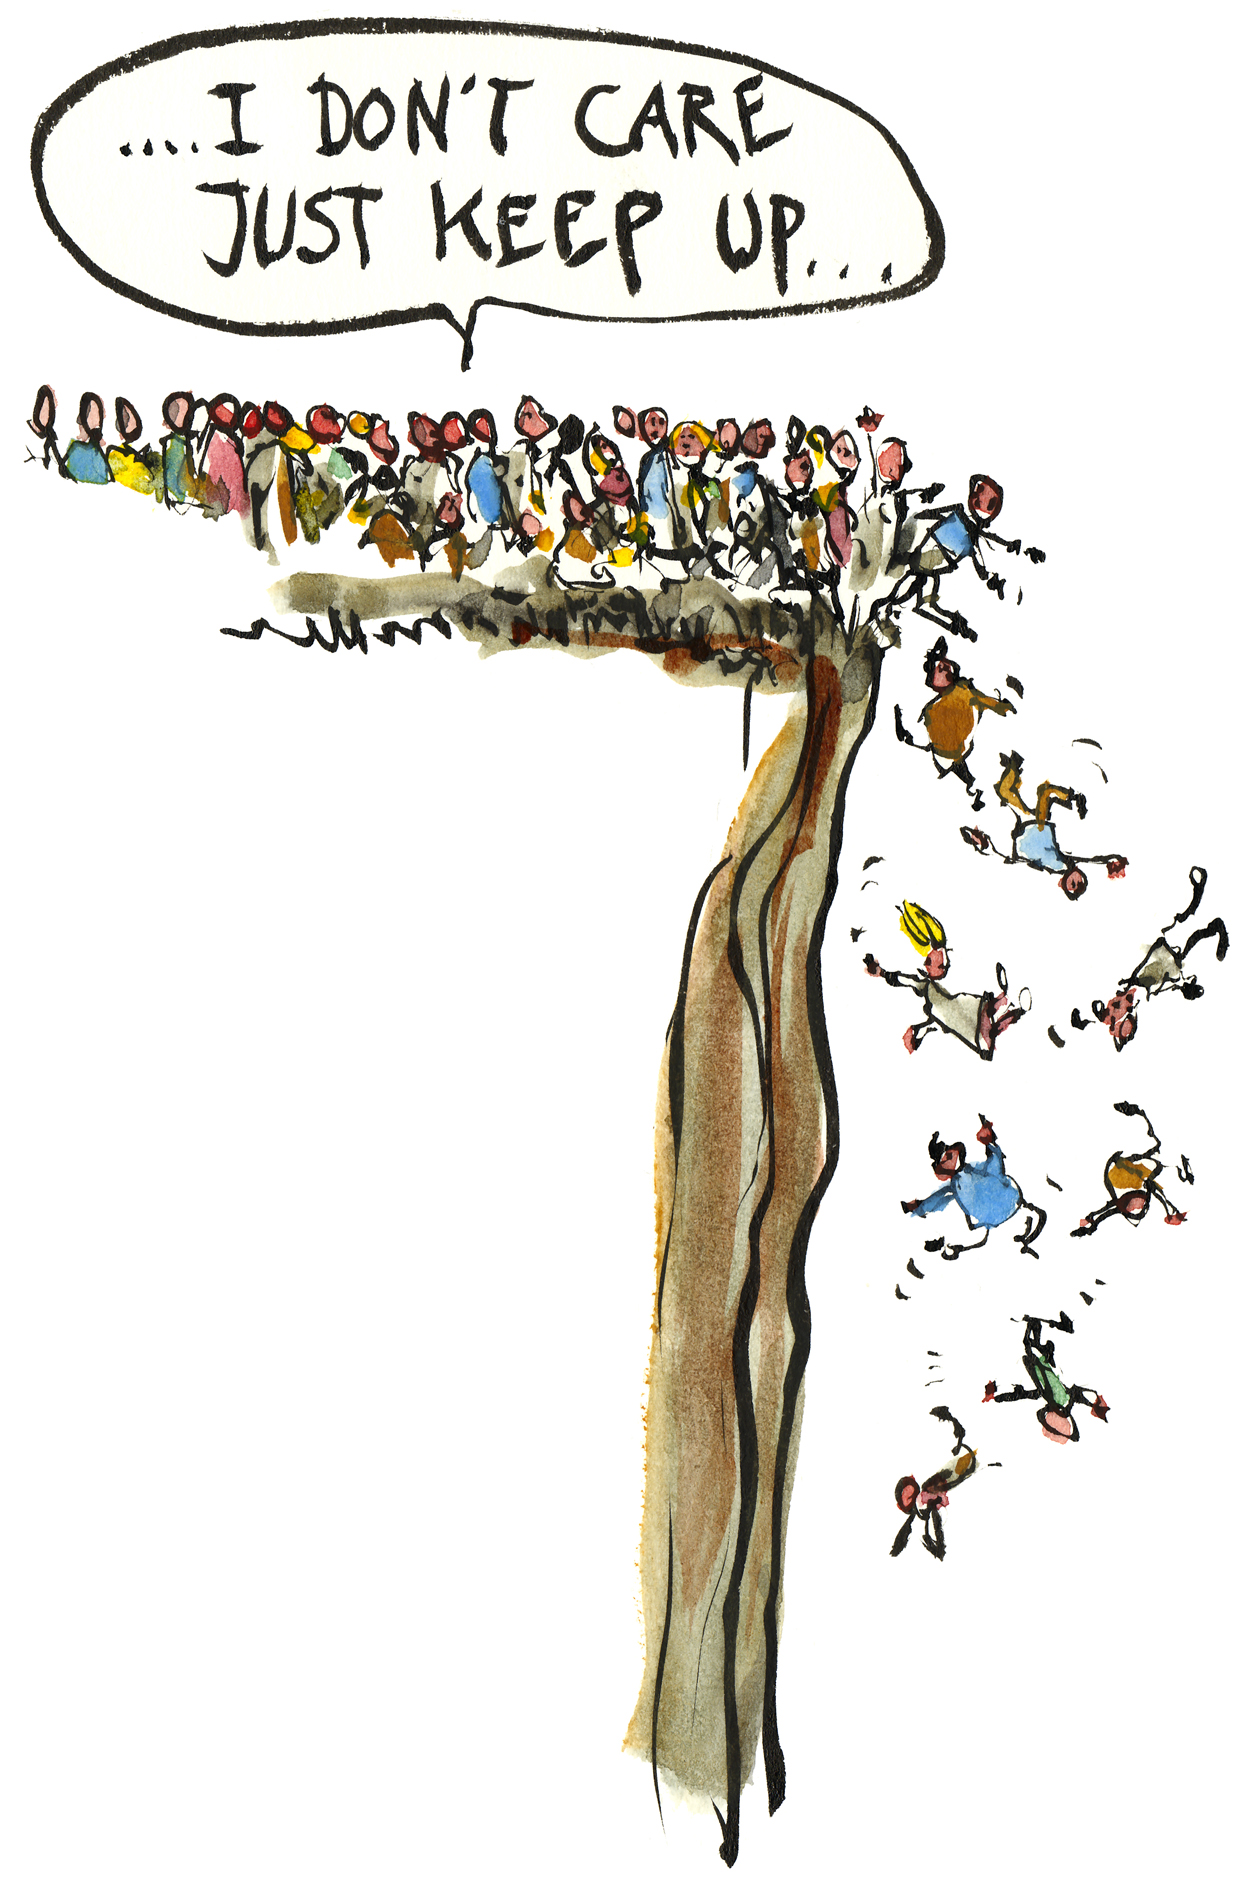 Drawing of people drawing out over an edge